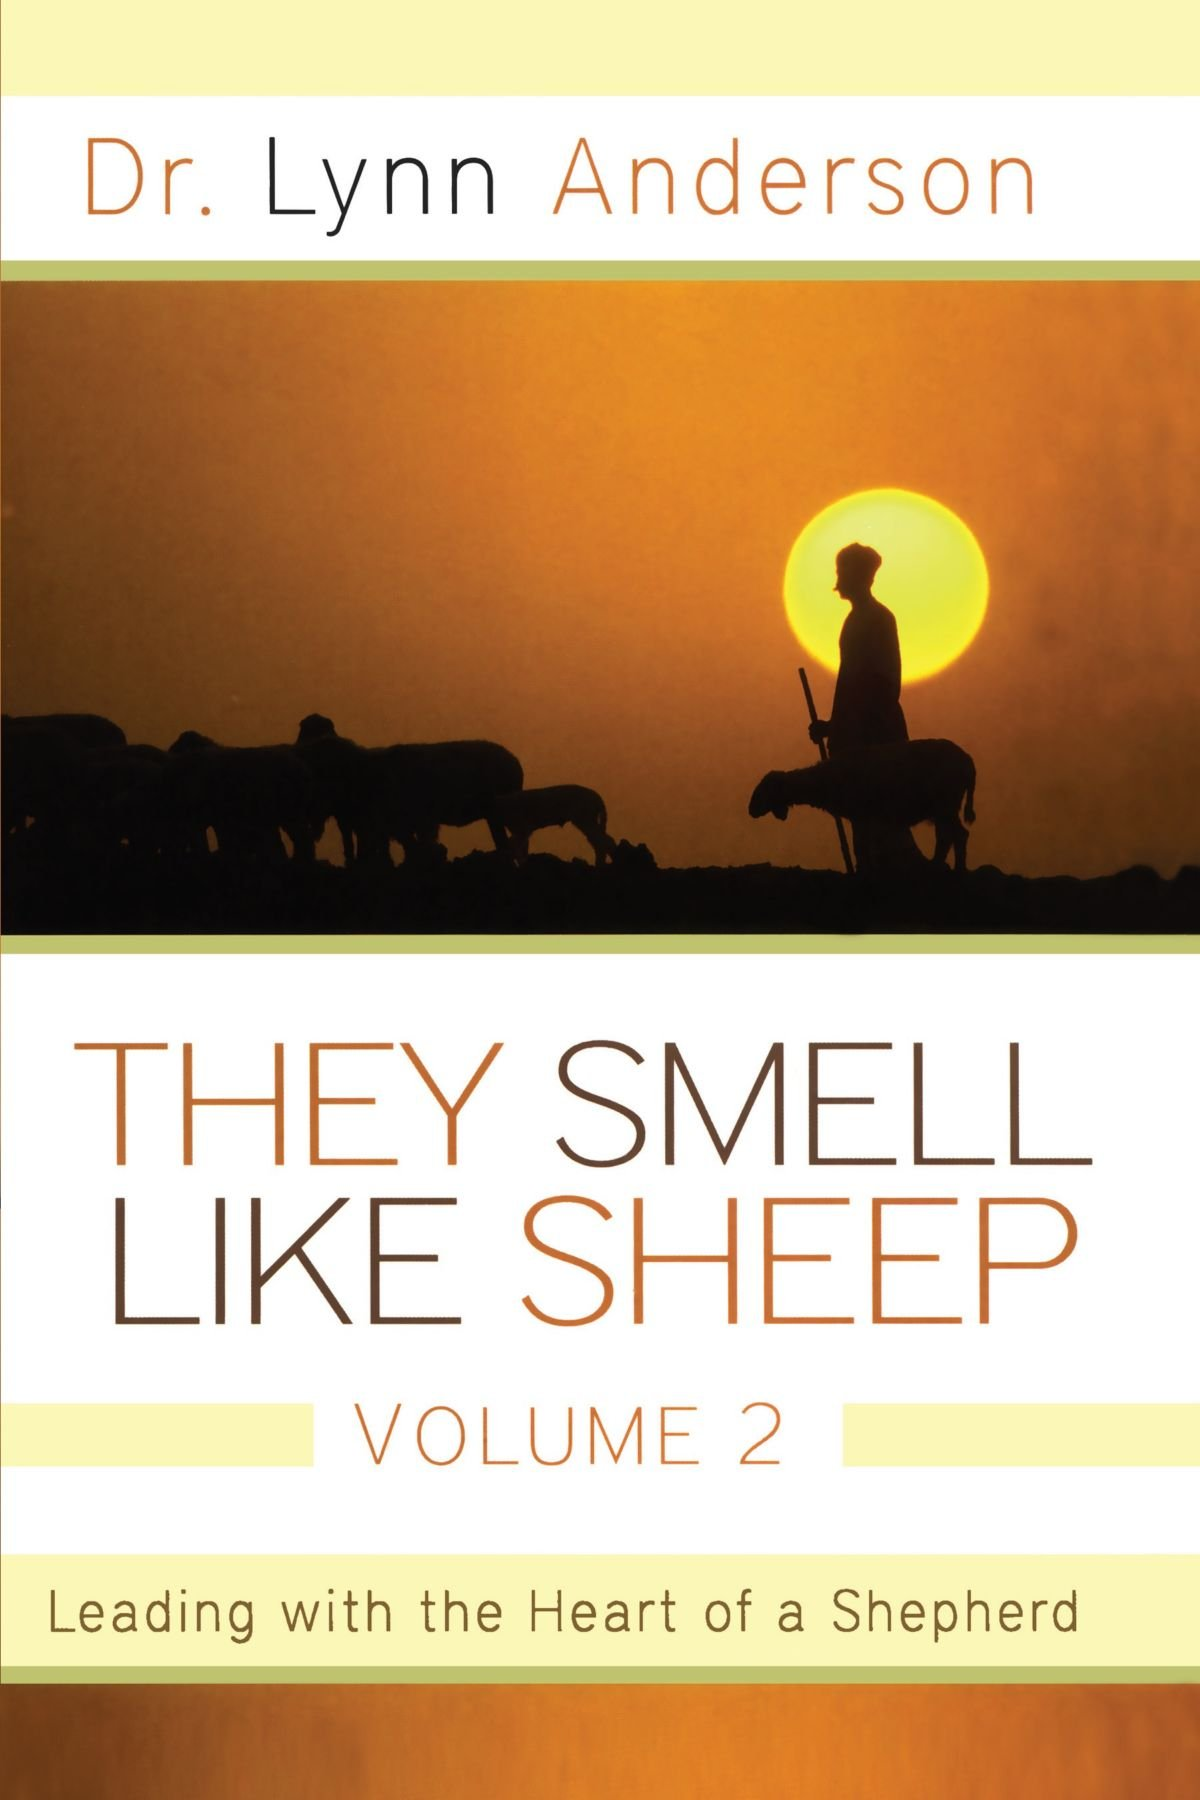 They Smell Like Sheep, Volume 2: Leading with the Heart of a Shepherd PDF